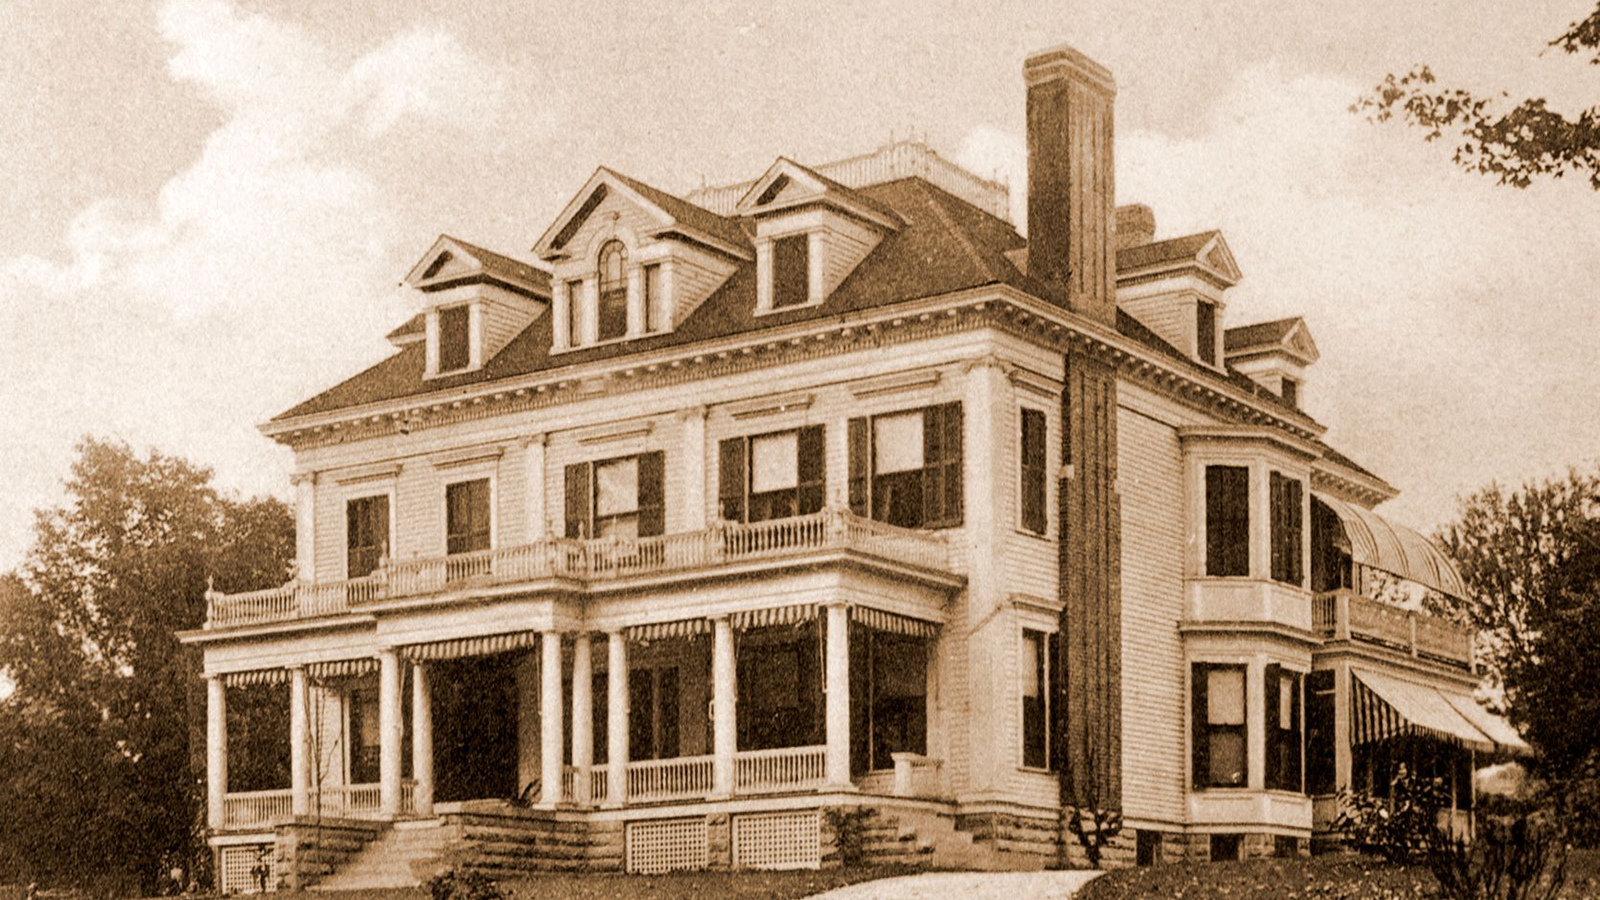 Historic image of Zabriskie House at the Inns of Aurora in Aurora, New York